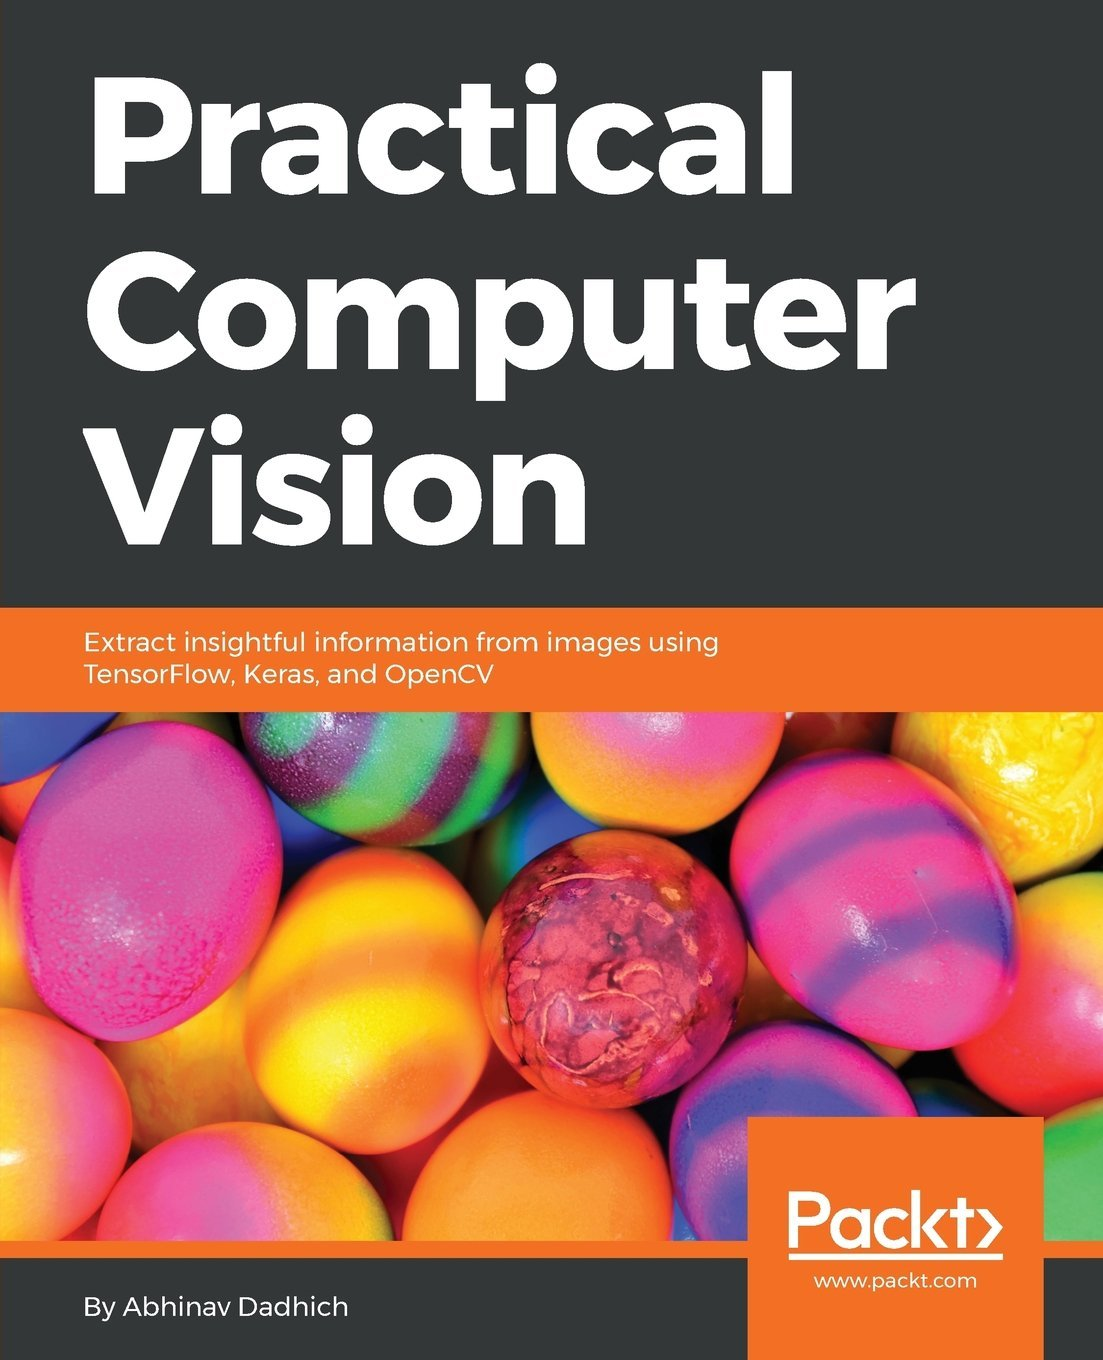 Practical Computer Vision: Extract insightful information